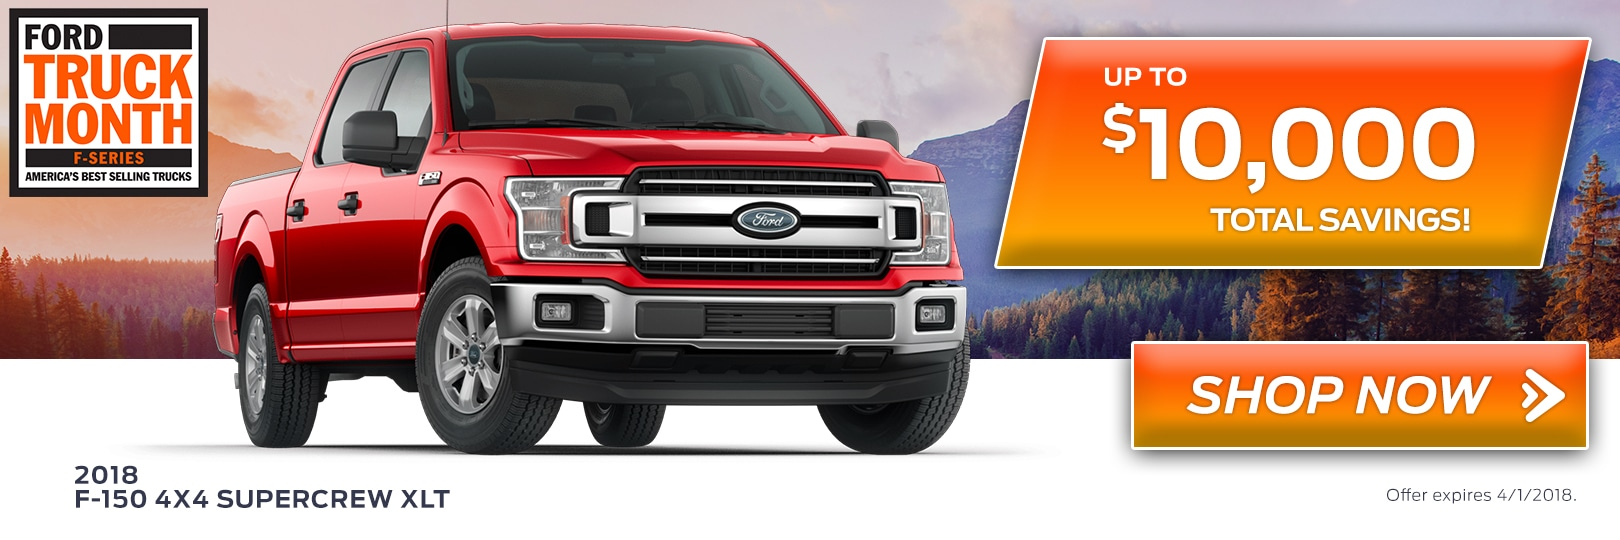 Visit Monadnock Ford | Swanzey, NH, Ford Sales & Service